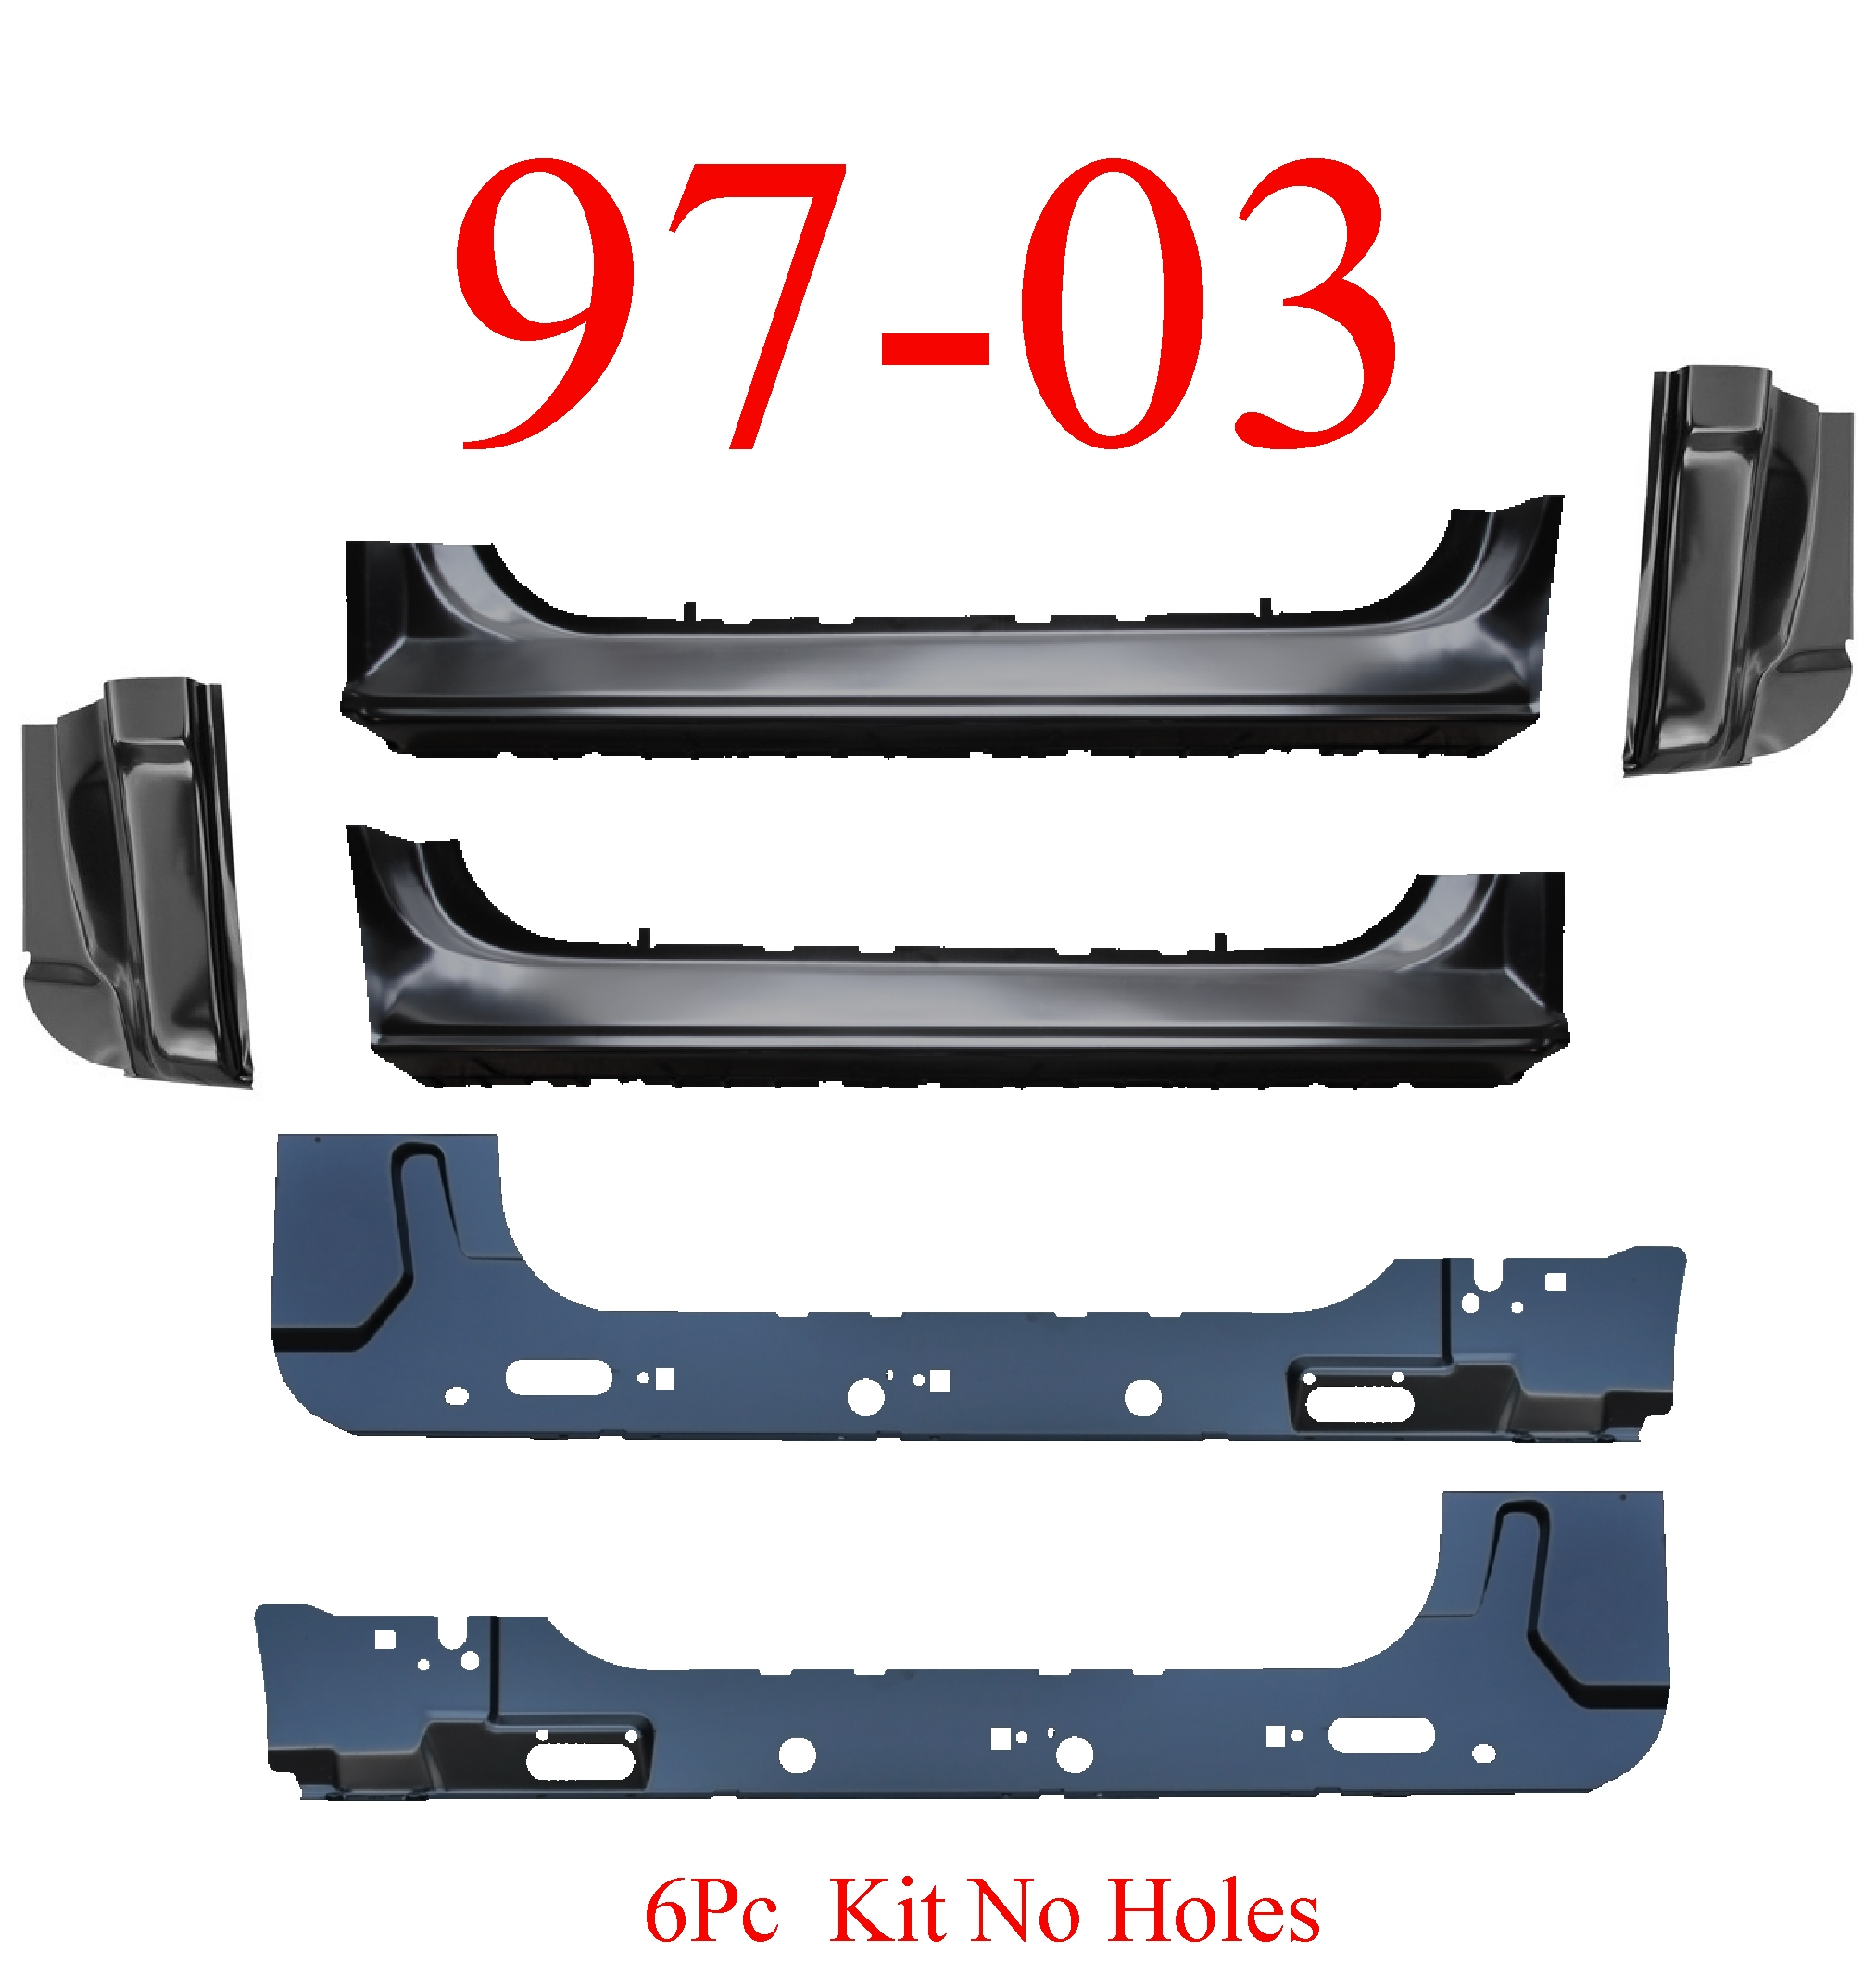 97-03 F150 6Pc Extended Rocker, Inner & Cab Corner Kit No Holes